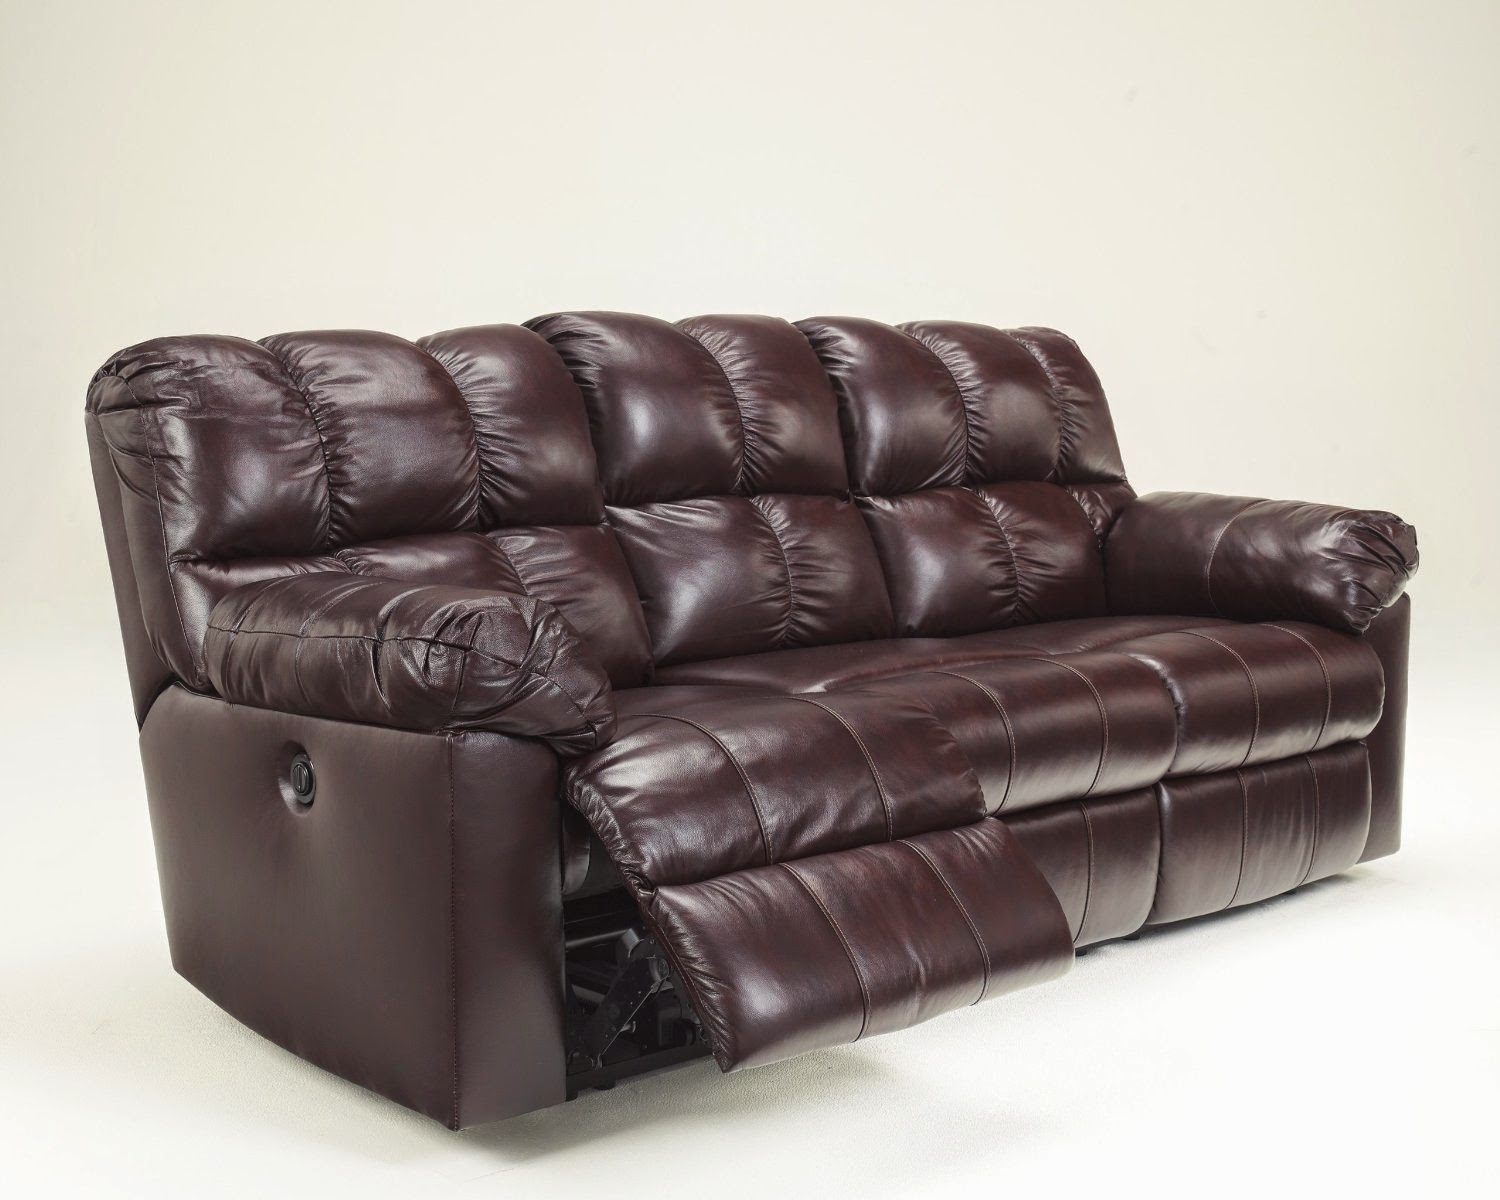 Reclining sofas for sale cheap red leather reclining sofa Leather reclining sofa loveseat